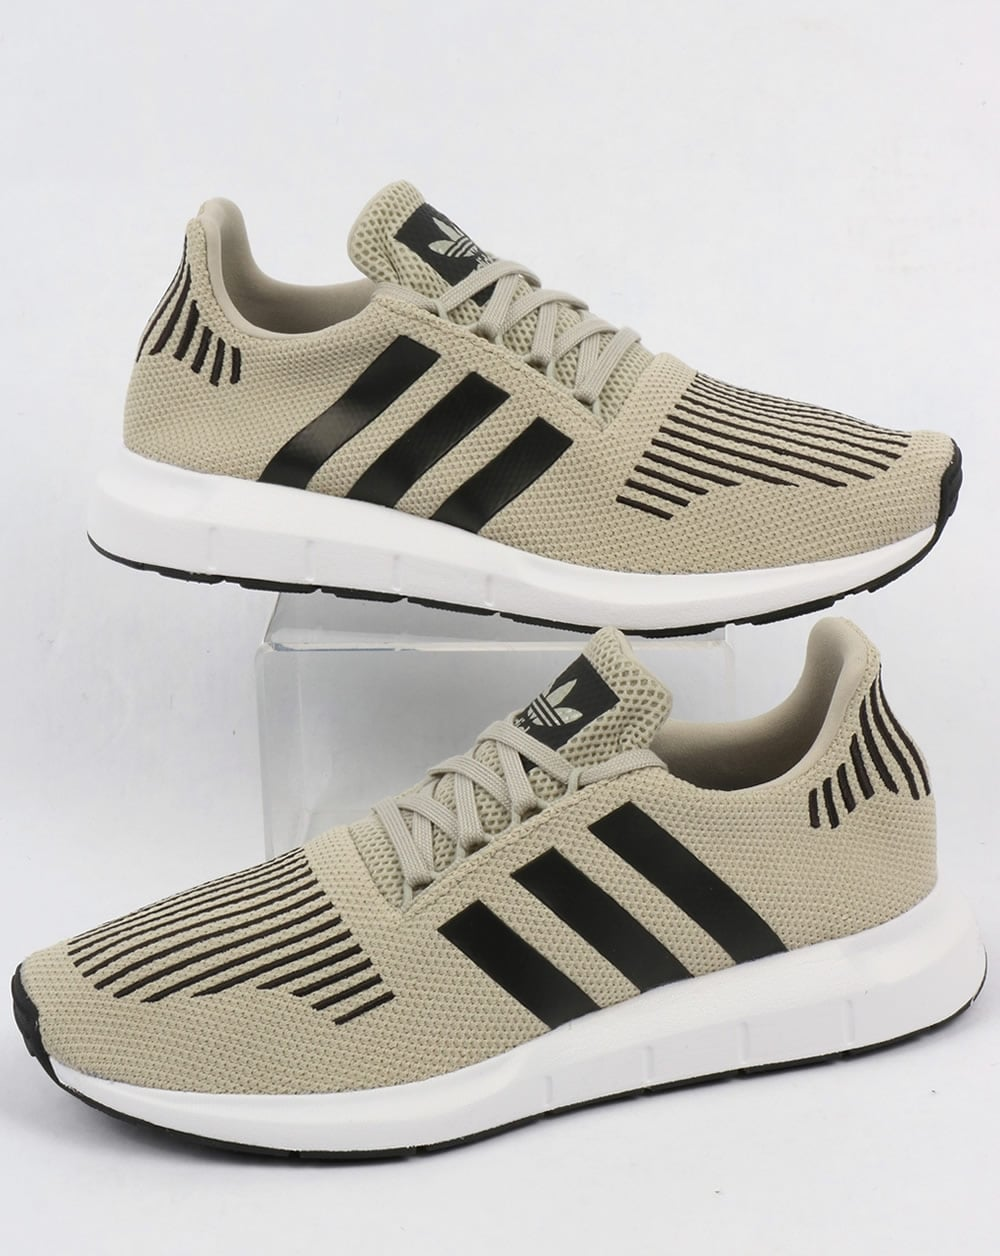 92b3efb8a24d7 adidas Trainers Adidas Swift Run Trainers Sesame Black White